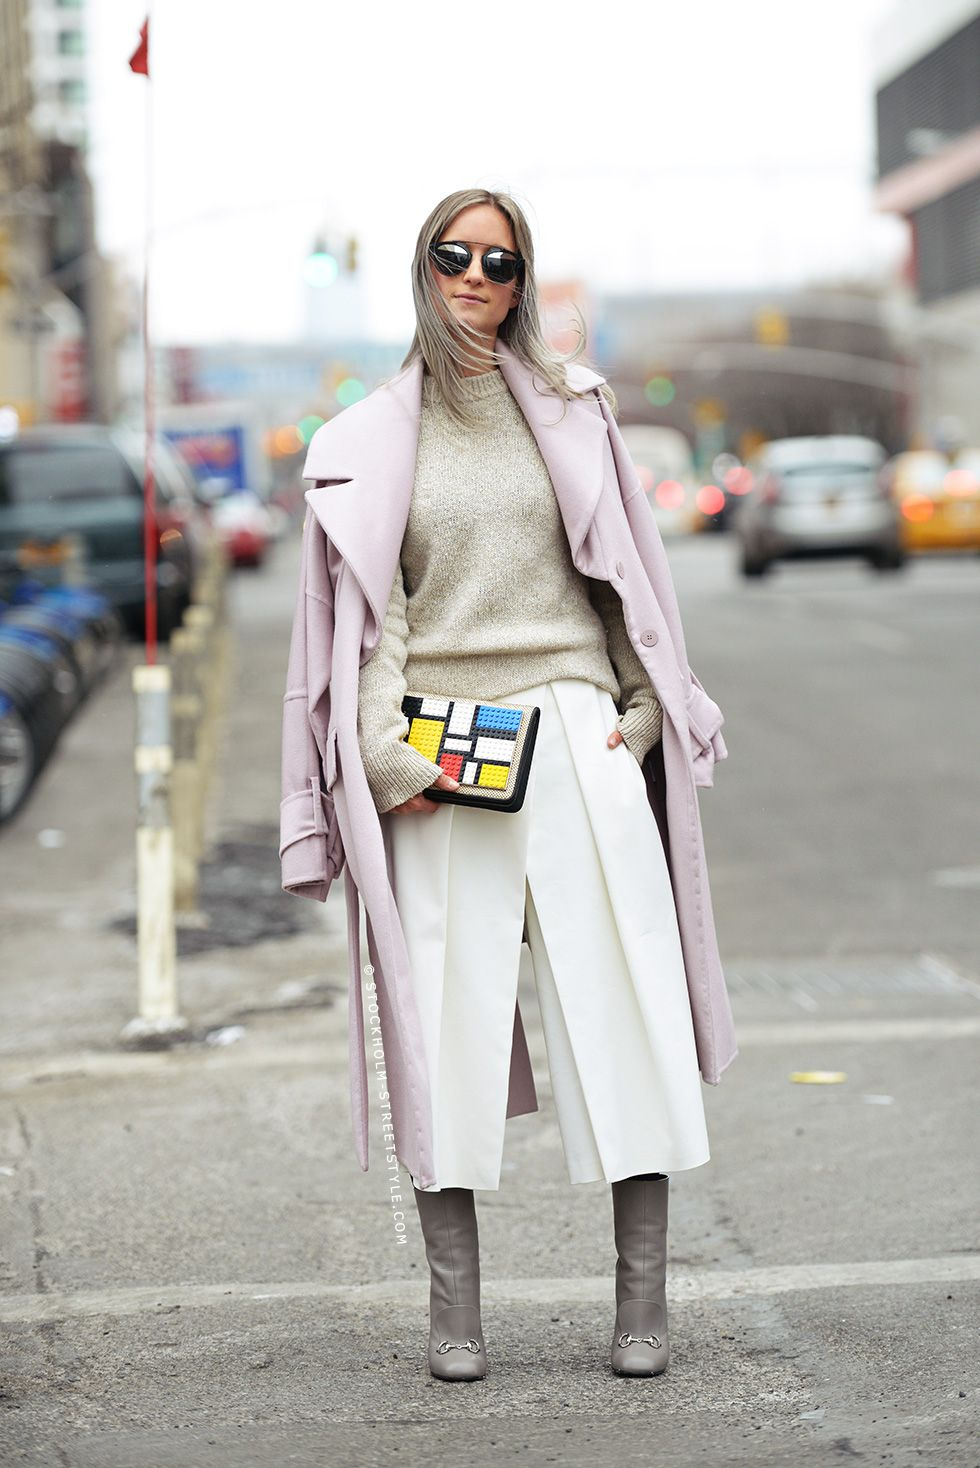 Really into that Lego Mondrian-style bag.